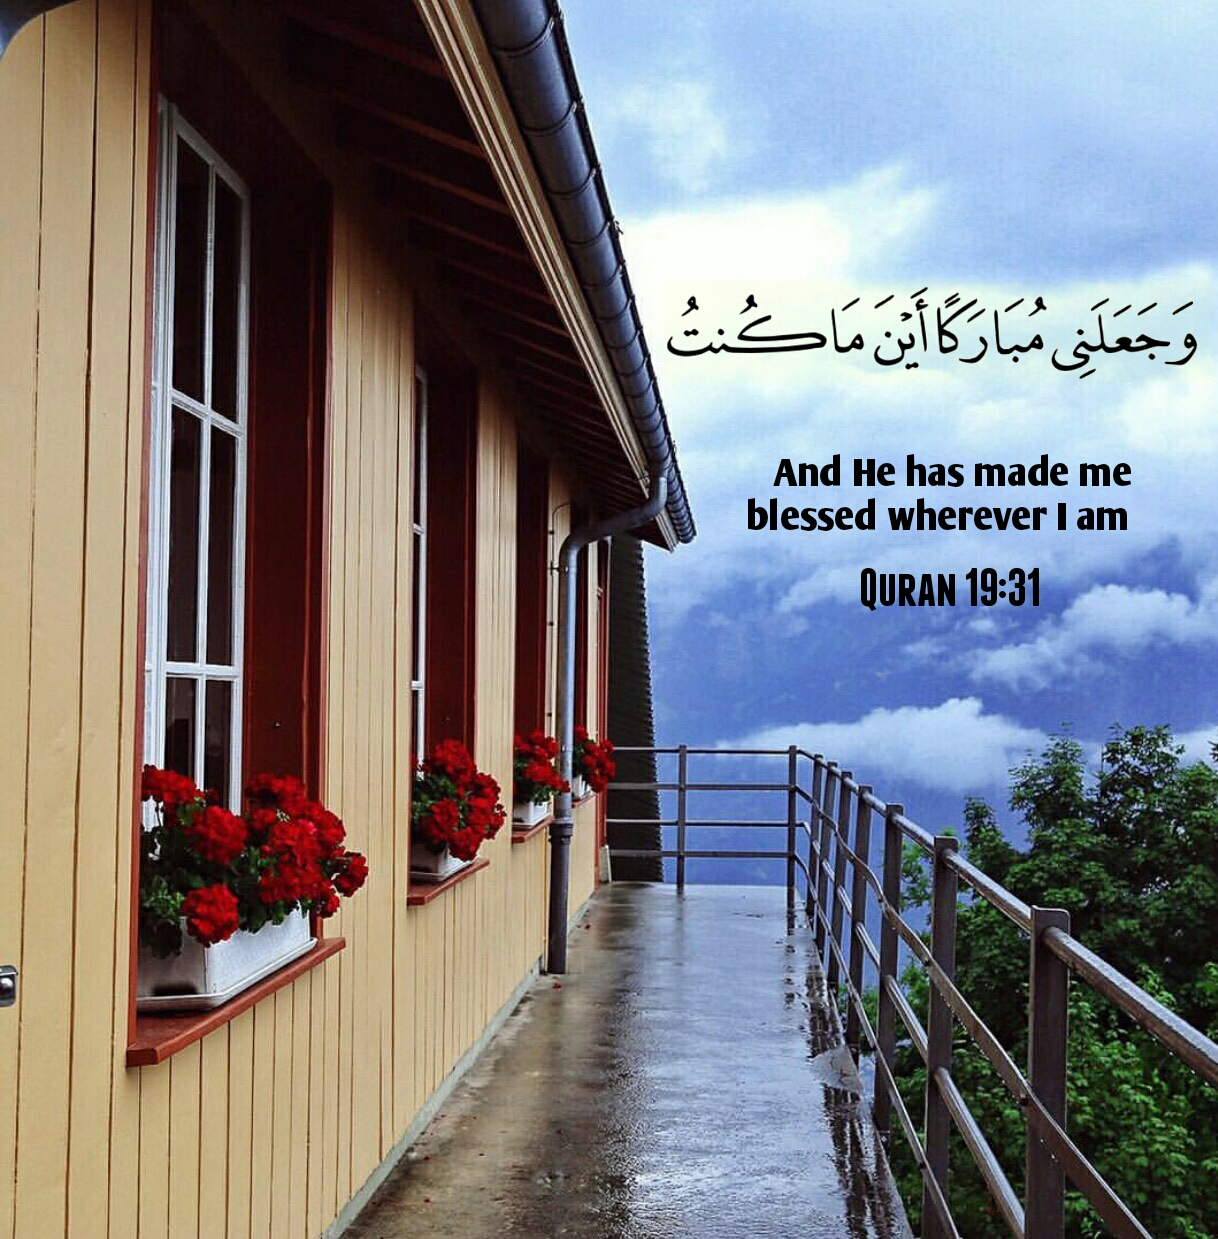 And He has made me blessed wherever I am | Surah Maryam 19:31